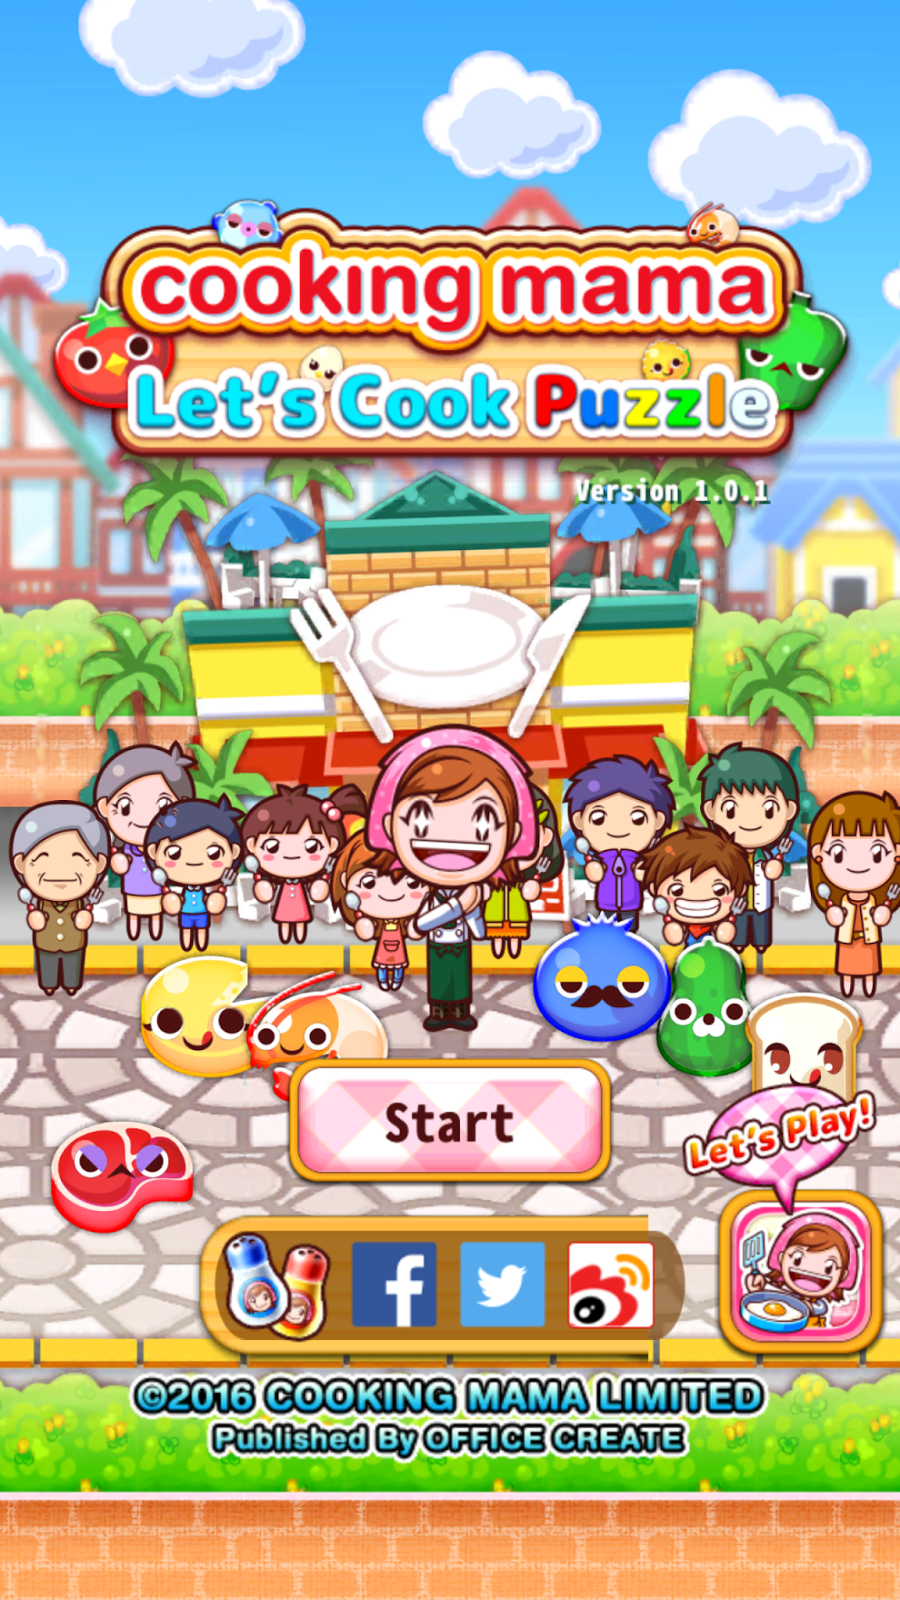 Fun addicting game apps - Today Free Iphone Game Of The Day Is Cooking Mama Let S Cook Puzzle